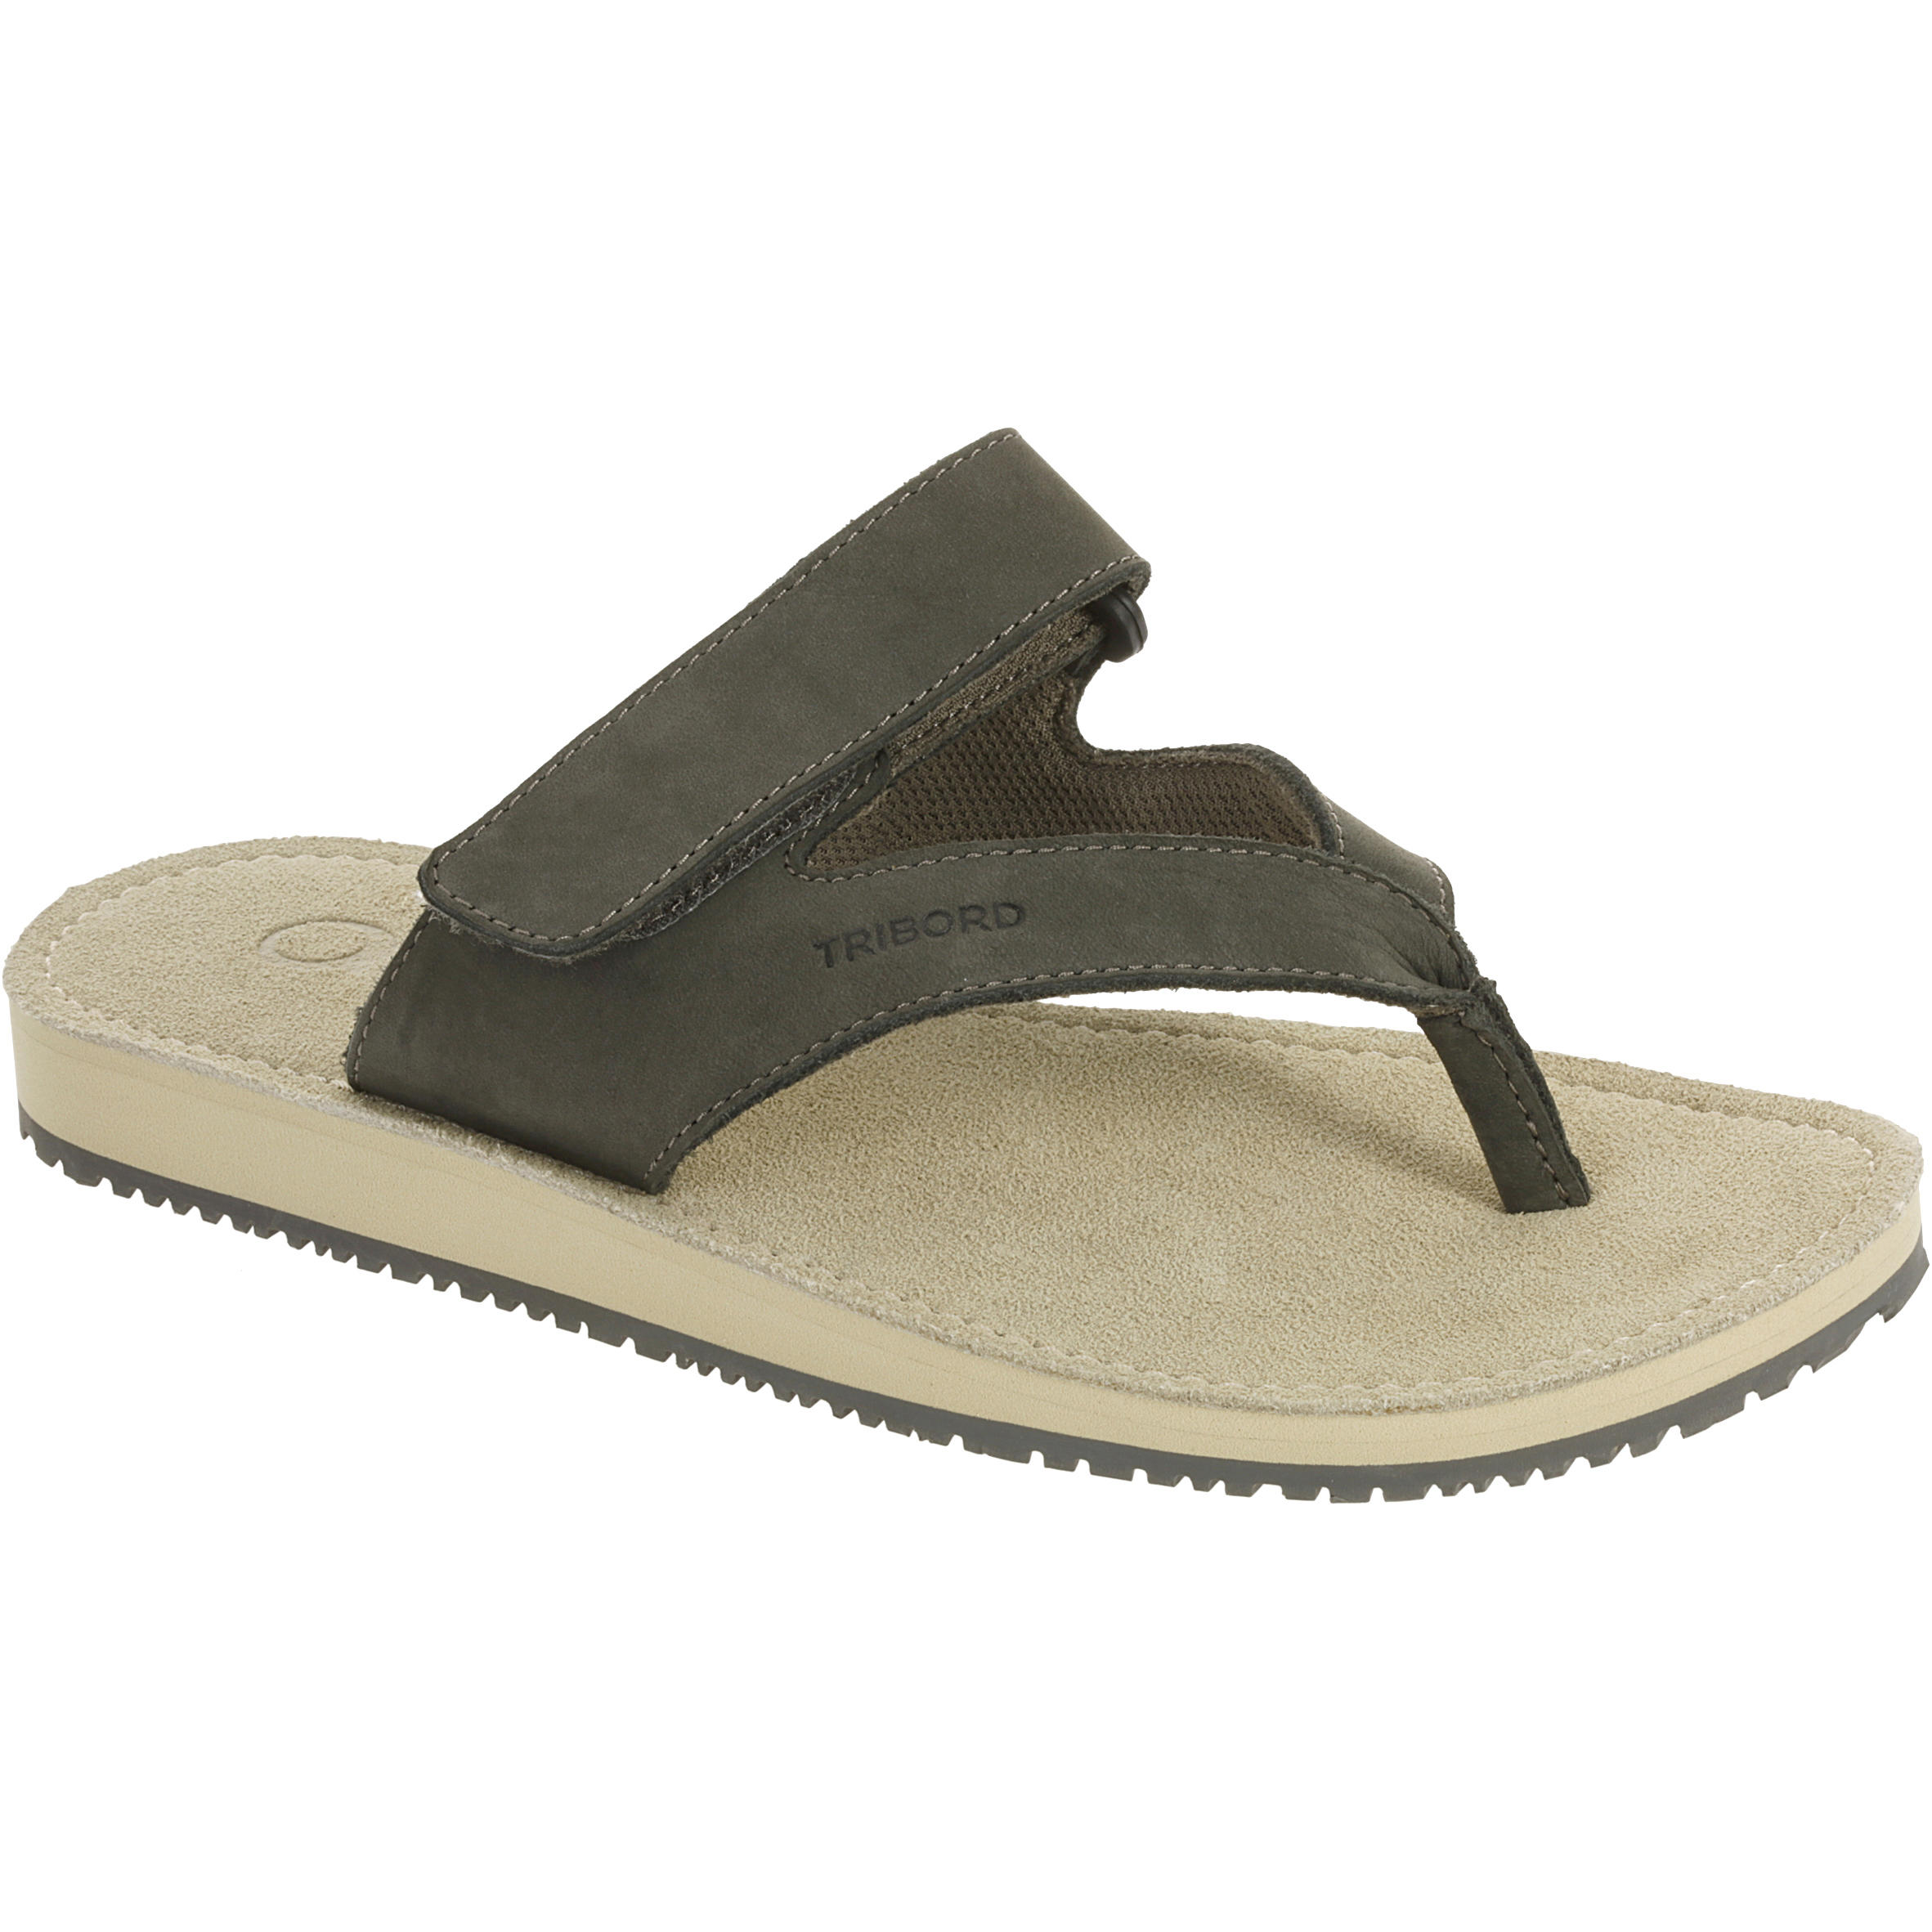 TO 900 W Women's Leather Flip-Flops - Grey